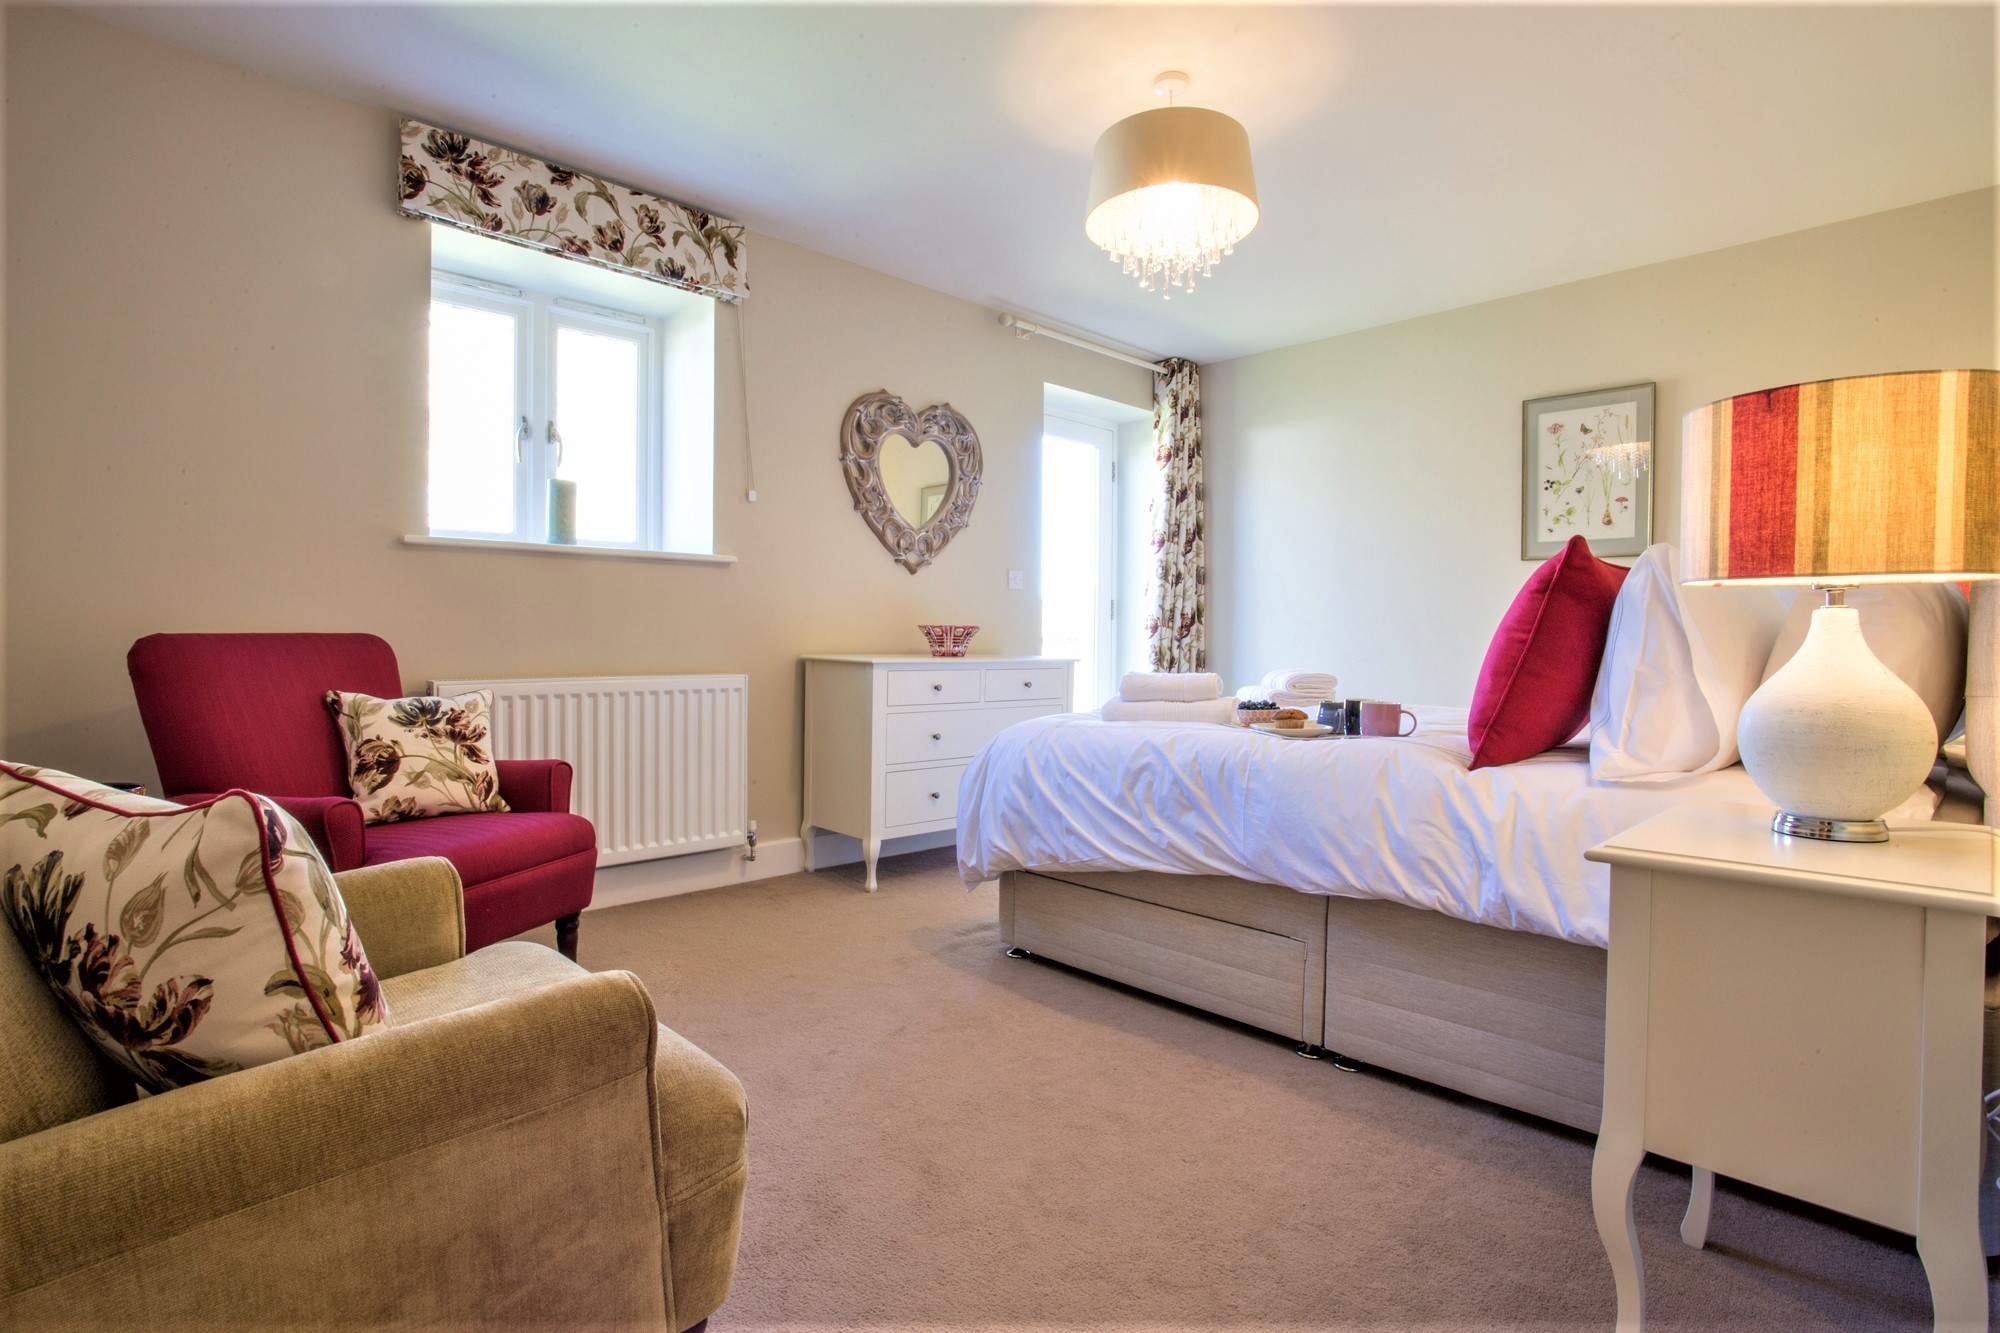 Northumberland cottages Air b and b, northumbrian cottages for families